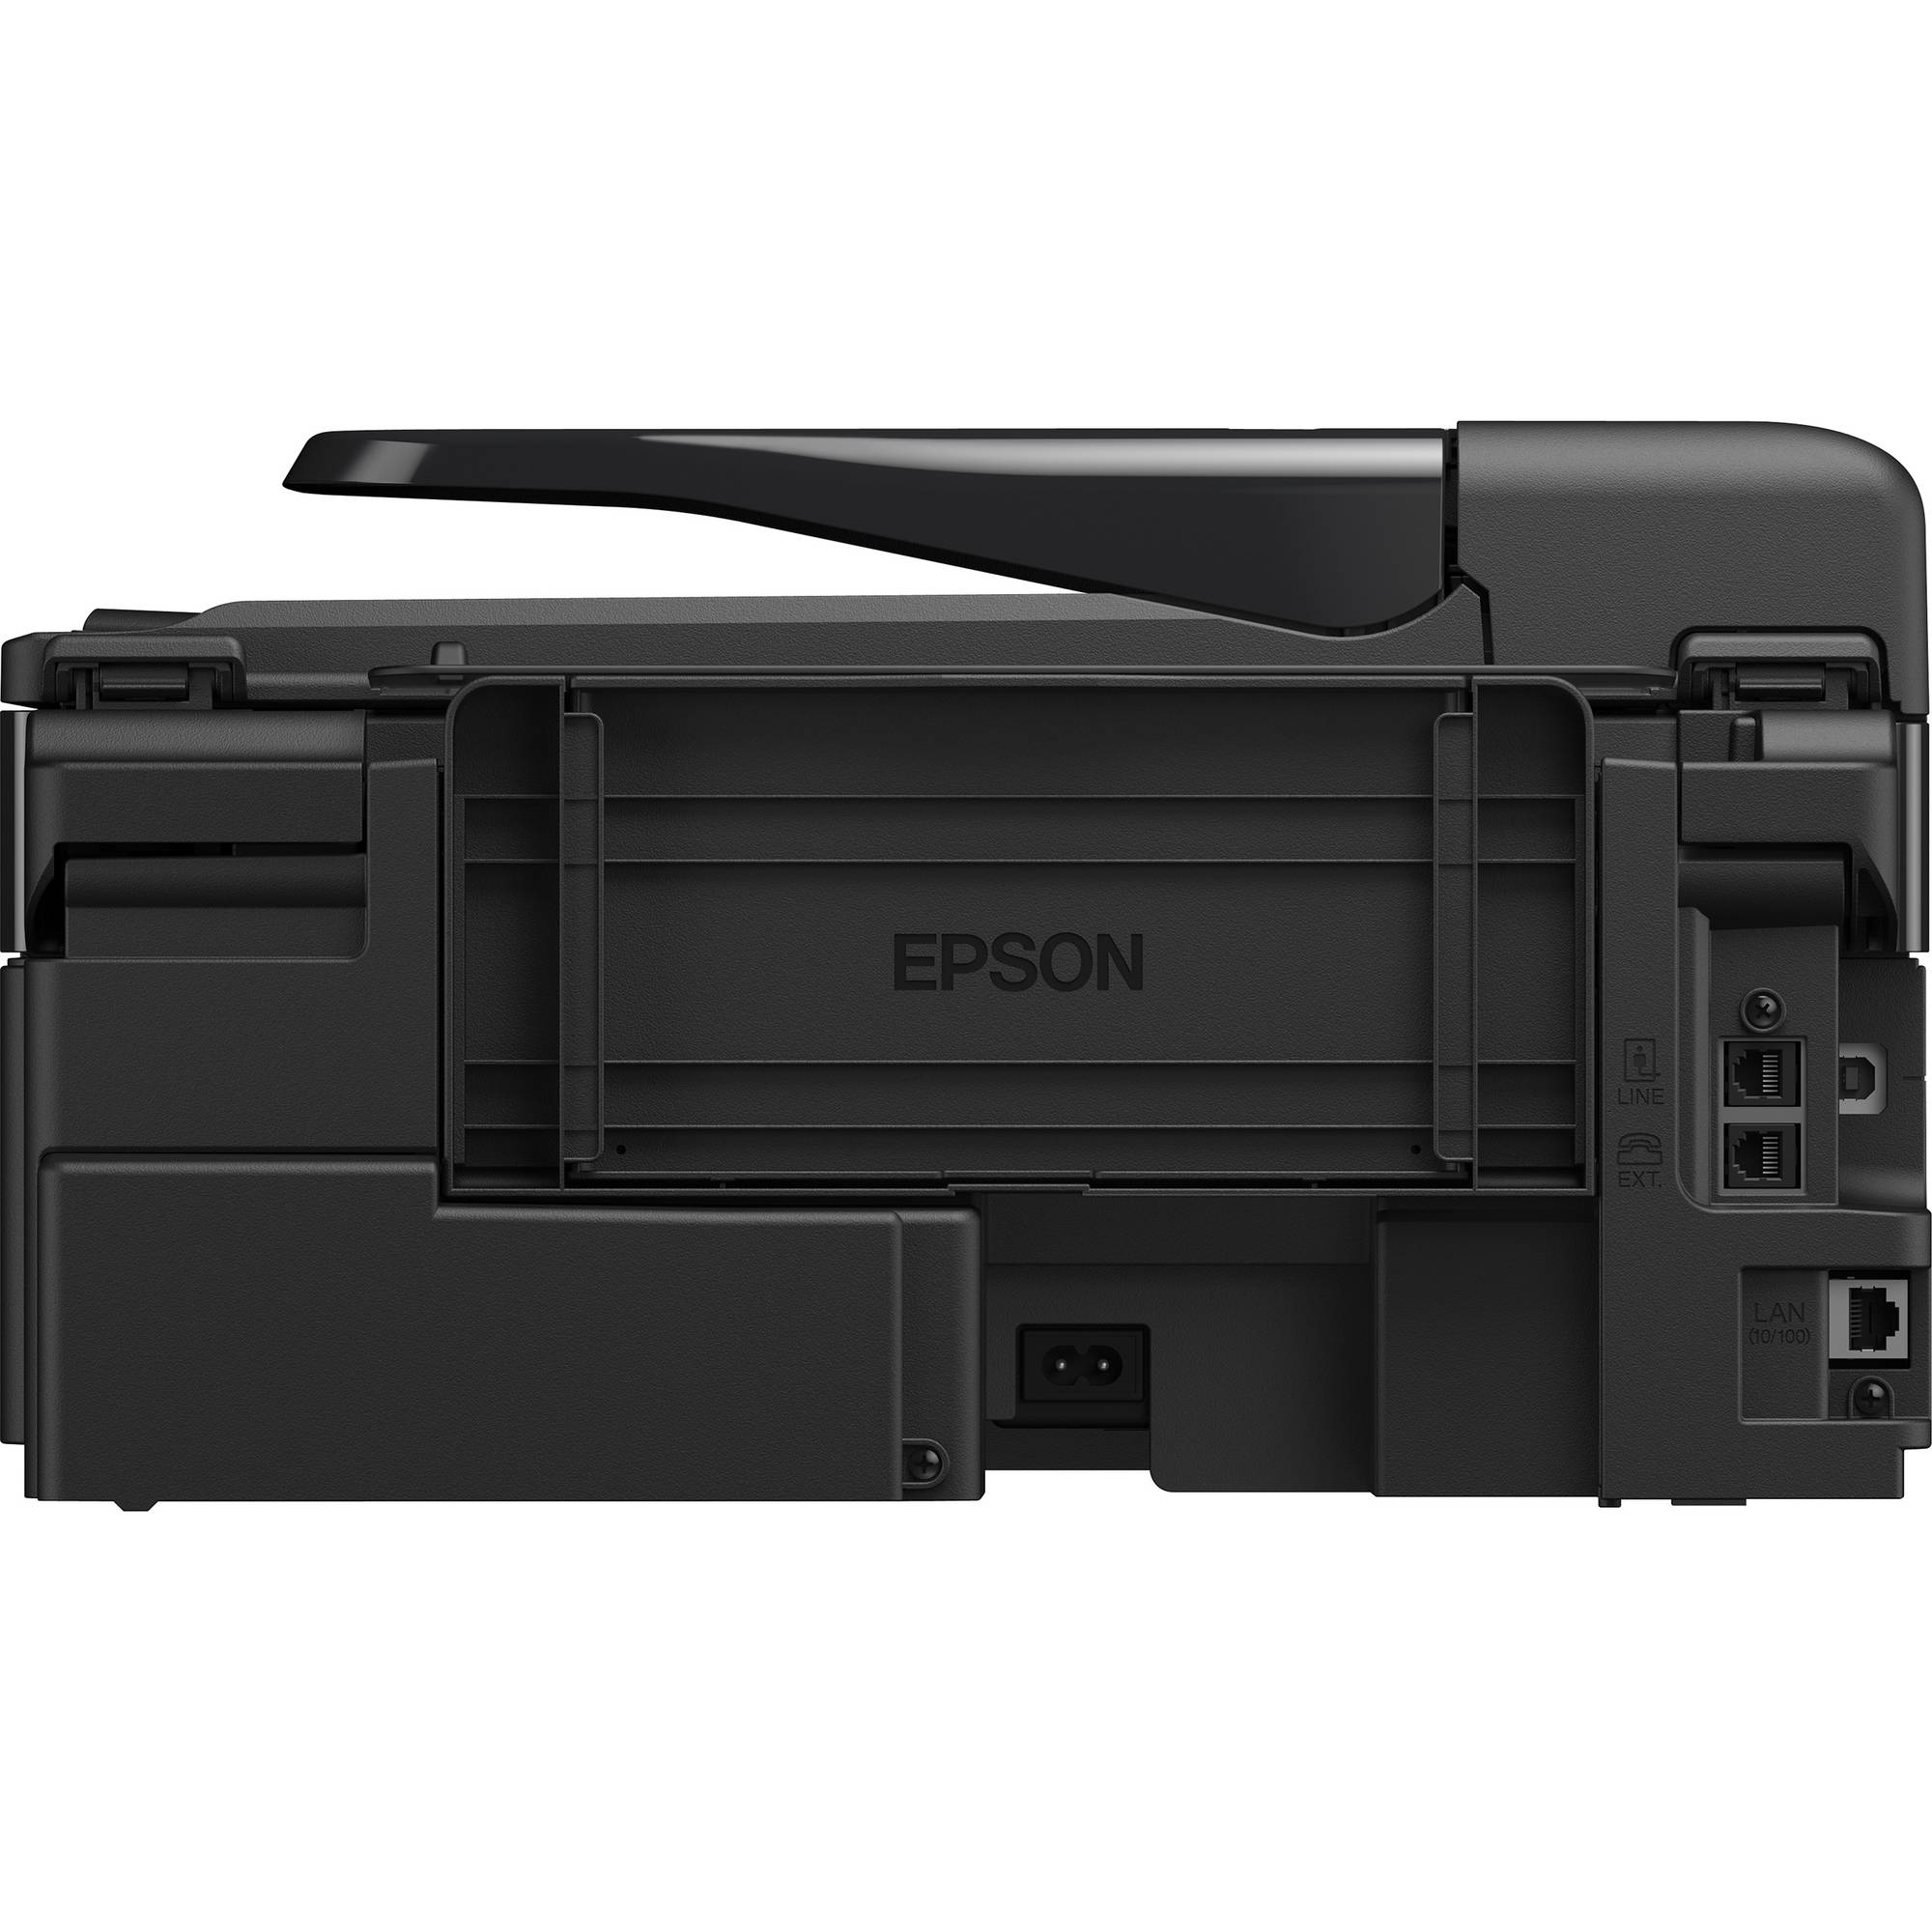 EPSON WF 2520 SCANNER DRIVER DOWNLOAD (2019)